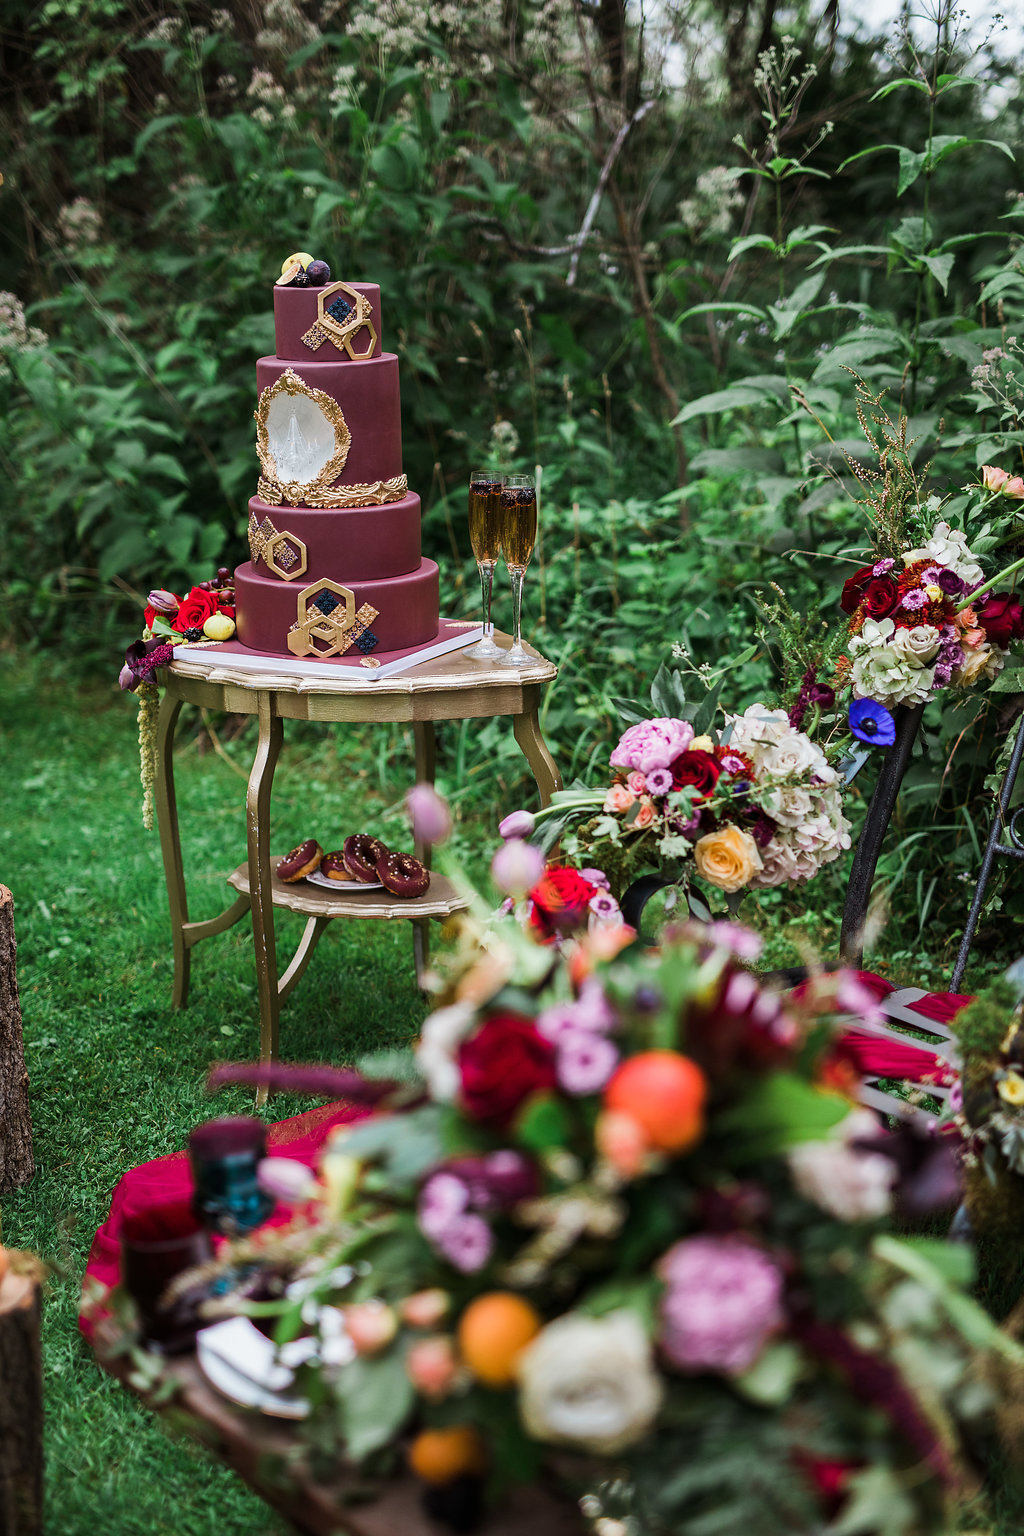 burgundy wedding inspiration - photo by Katie Ricard Photography http://ruffledblog.com/dramatic-woodland-wedding-inspiration-with-burgundy-accents